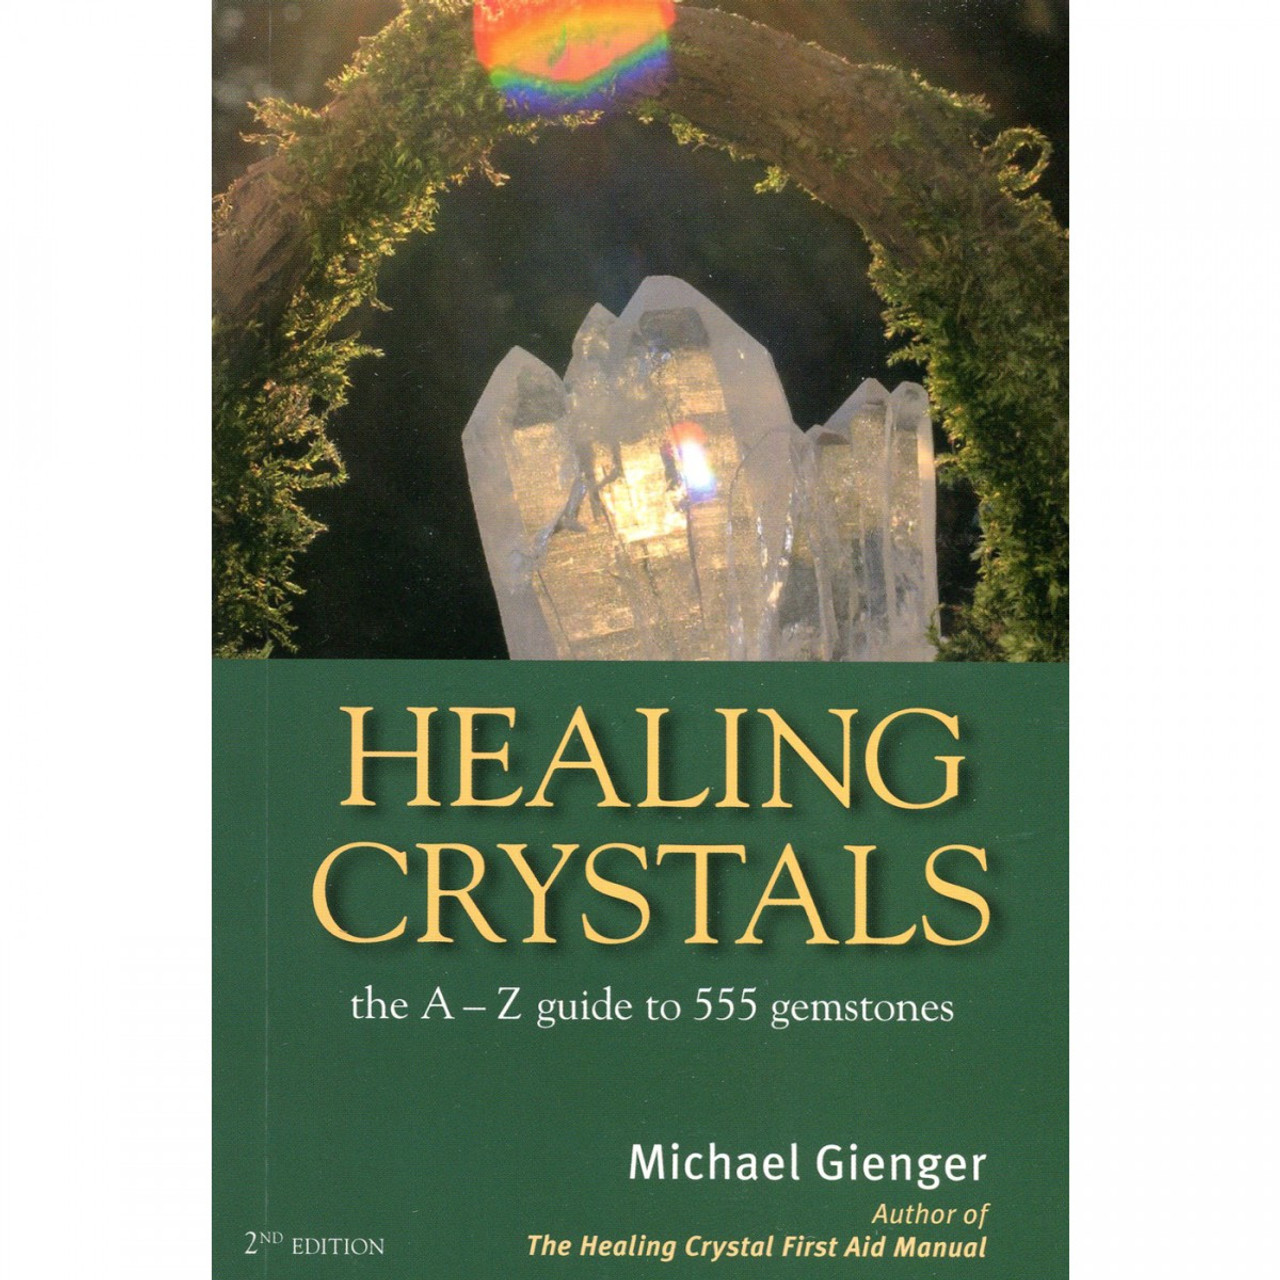 Healing Crystals - The A-Z Guide (2nd Ed) by Michael Gienger